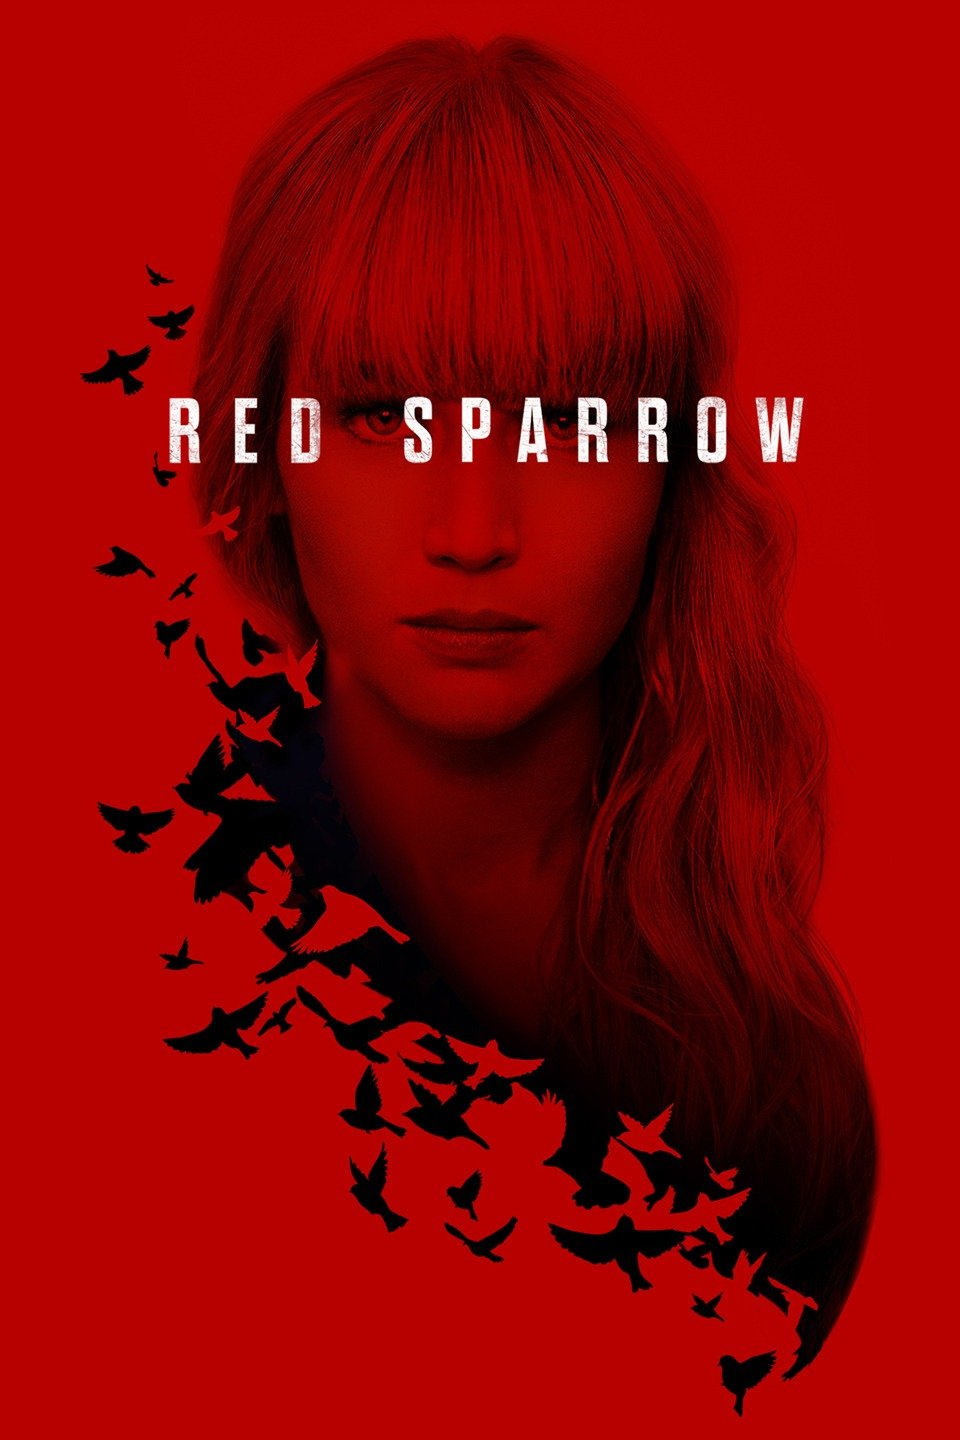 red sparrow full movie in hindi free download 720p bluray 1.3GB